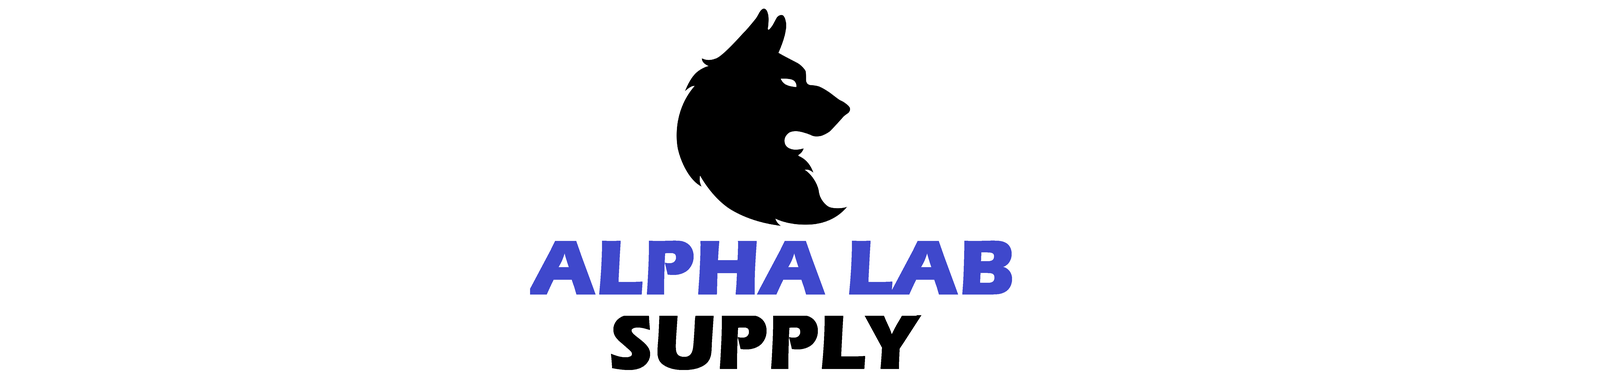 Alpha Lab Supply